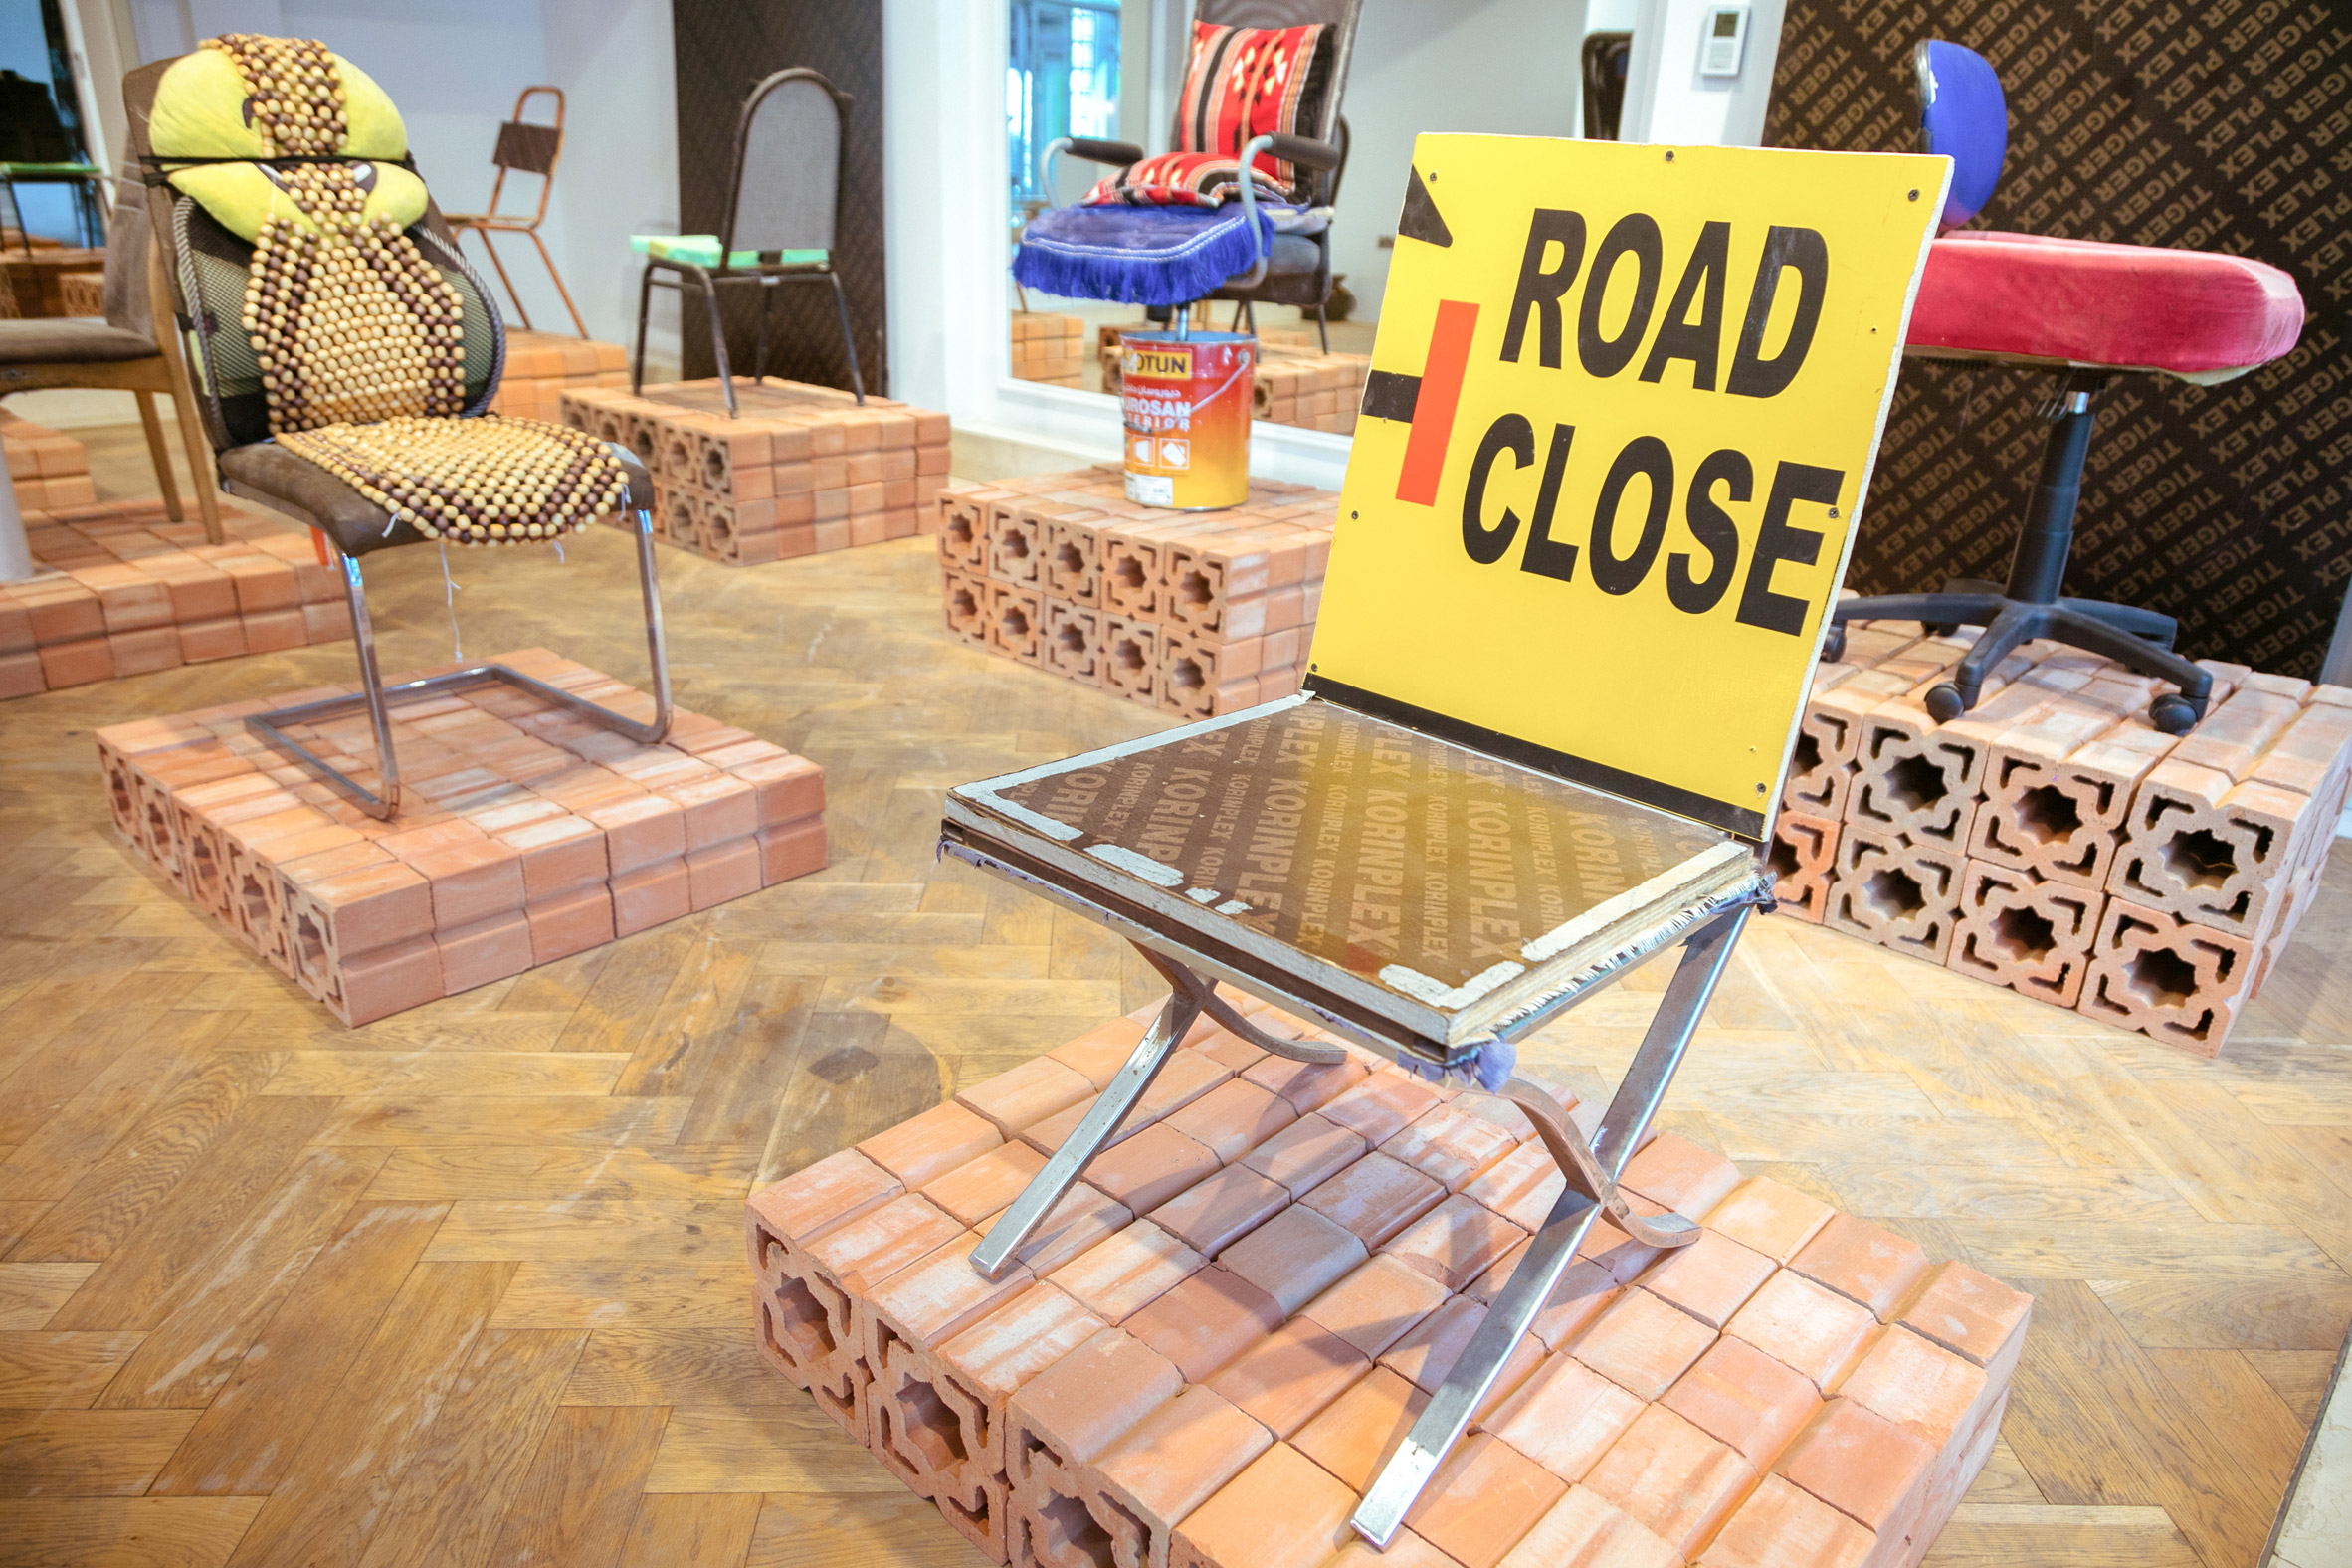 SMC Samir Mohd Carpentry chair from How to be at Rest installation at Dubai Design Week